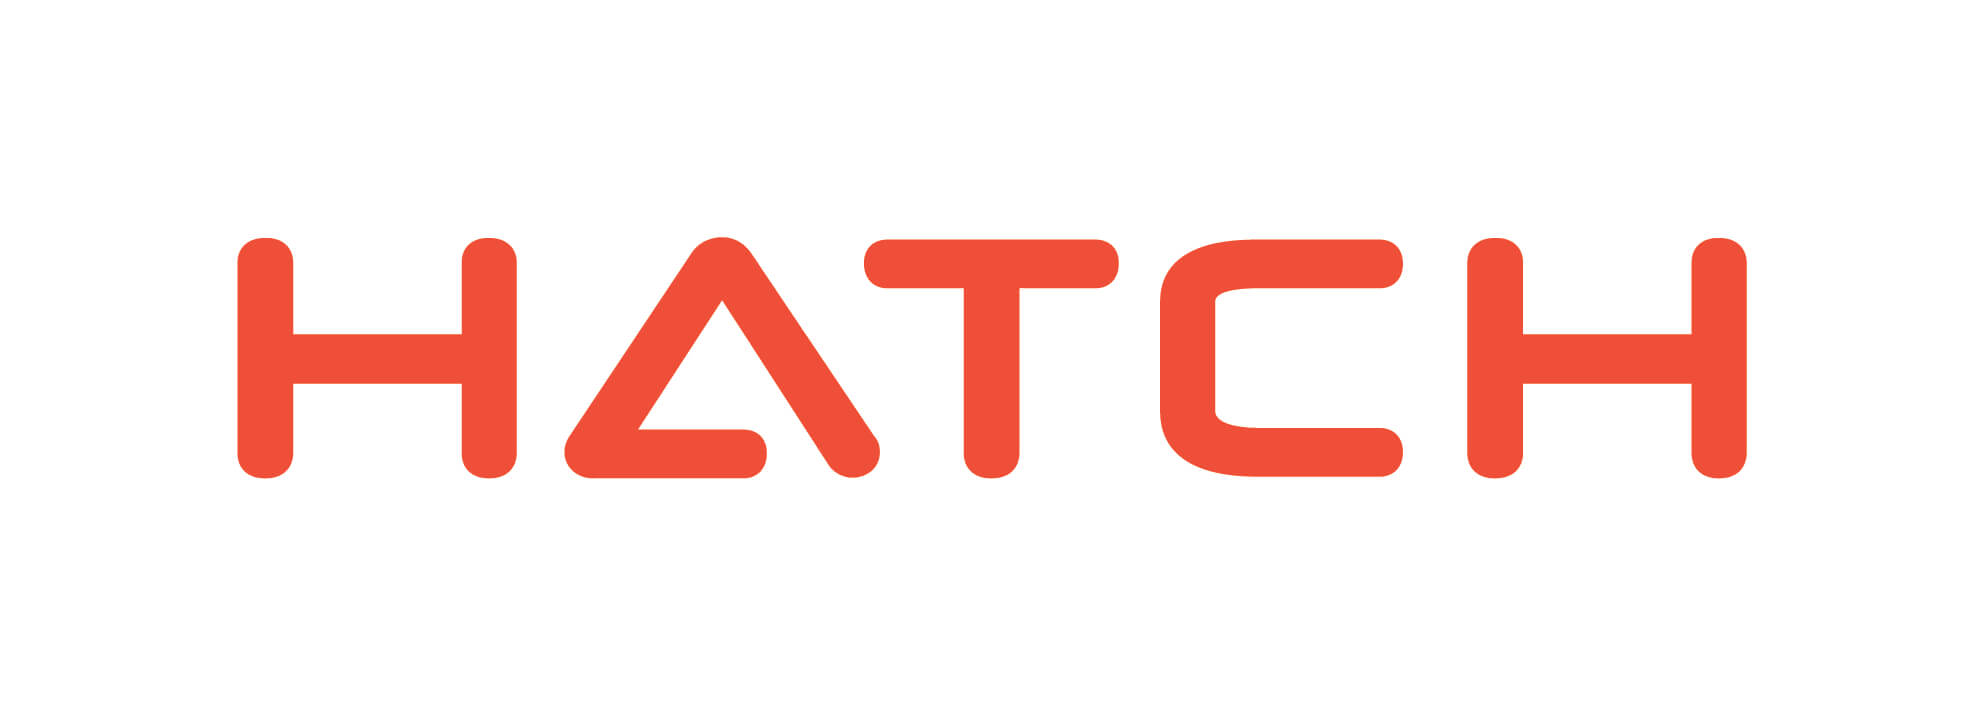 Hatch_Logo_Colour_Spot.jpg